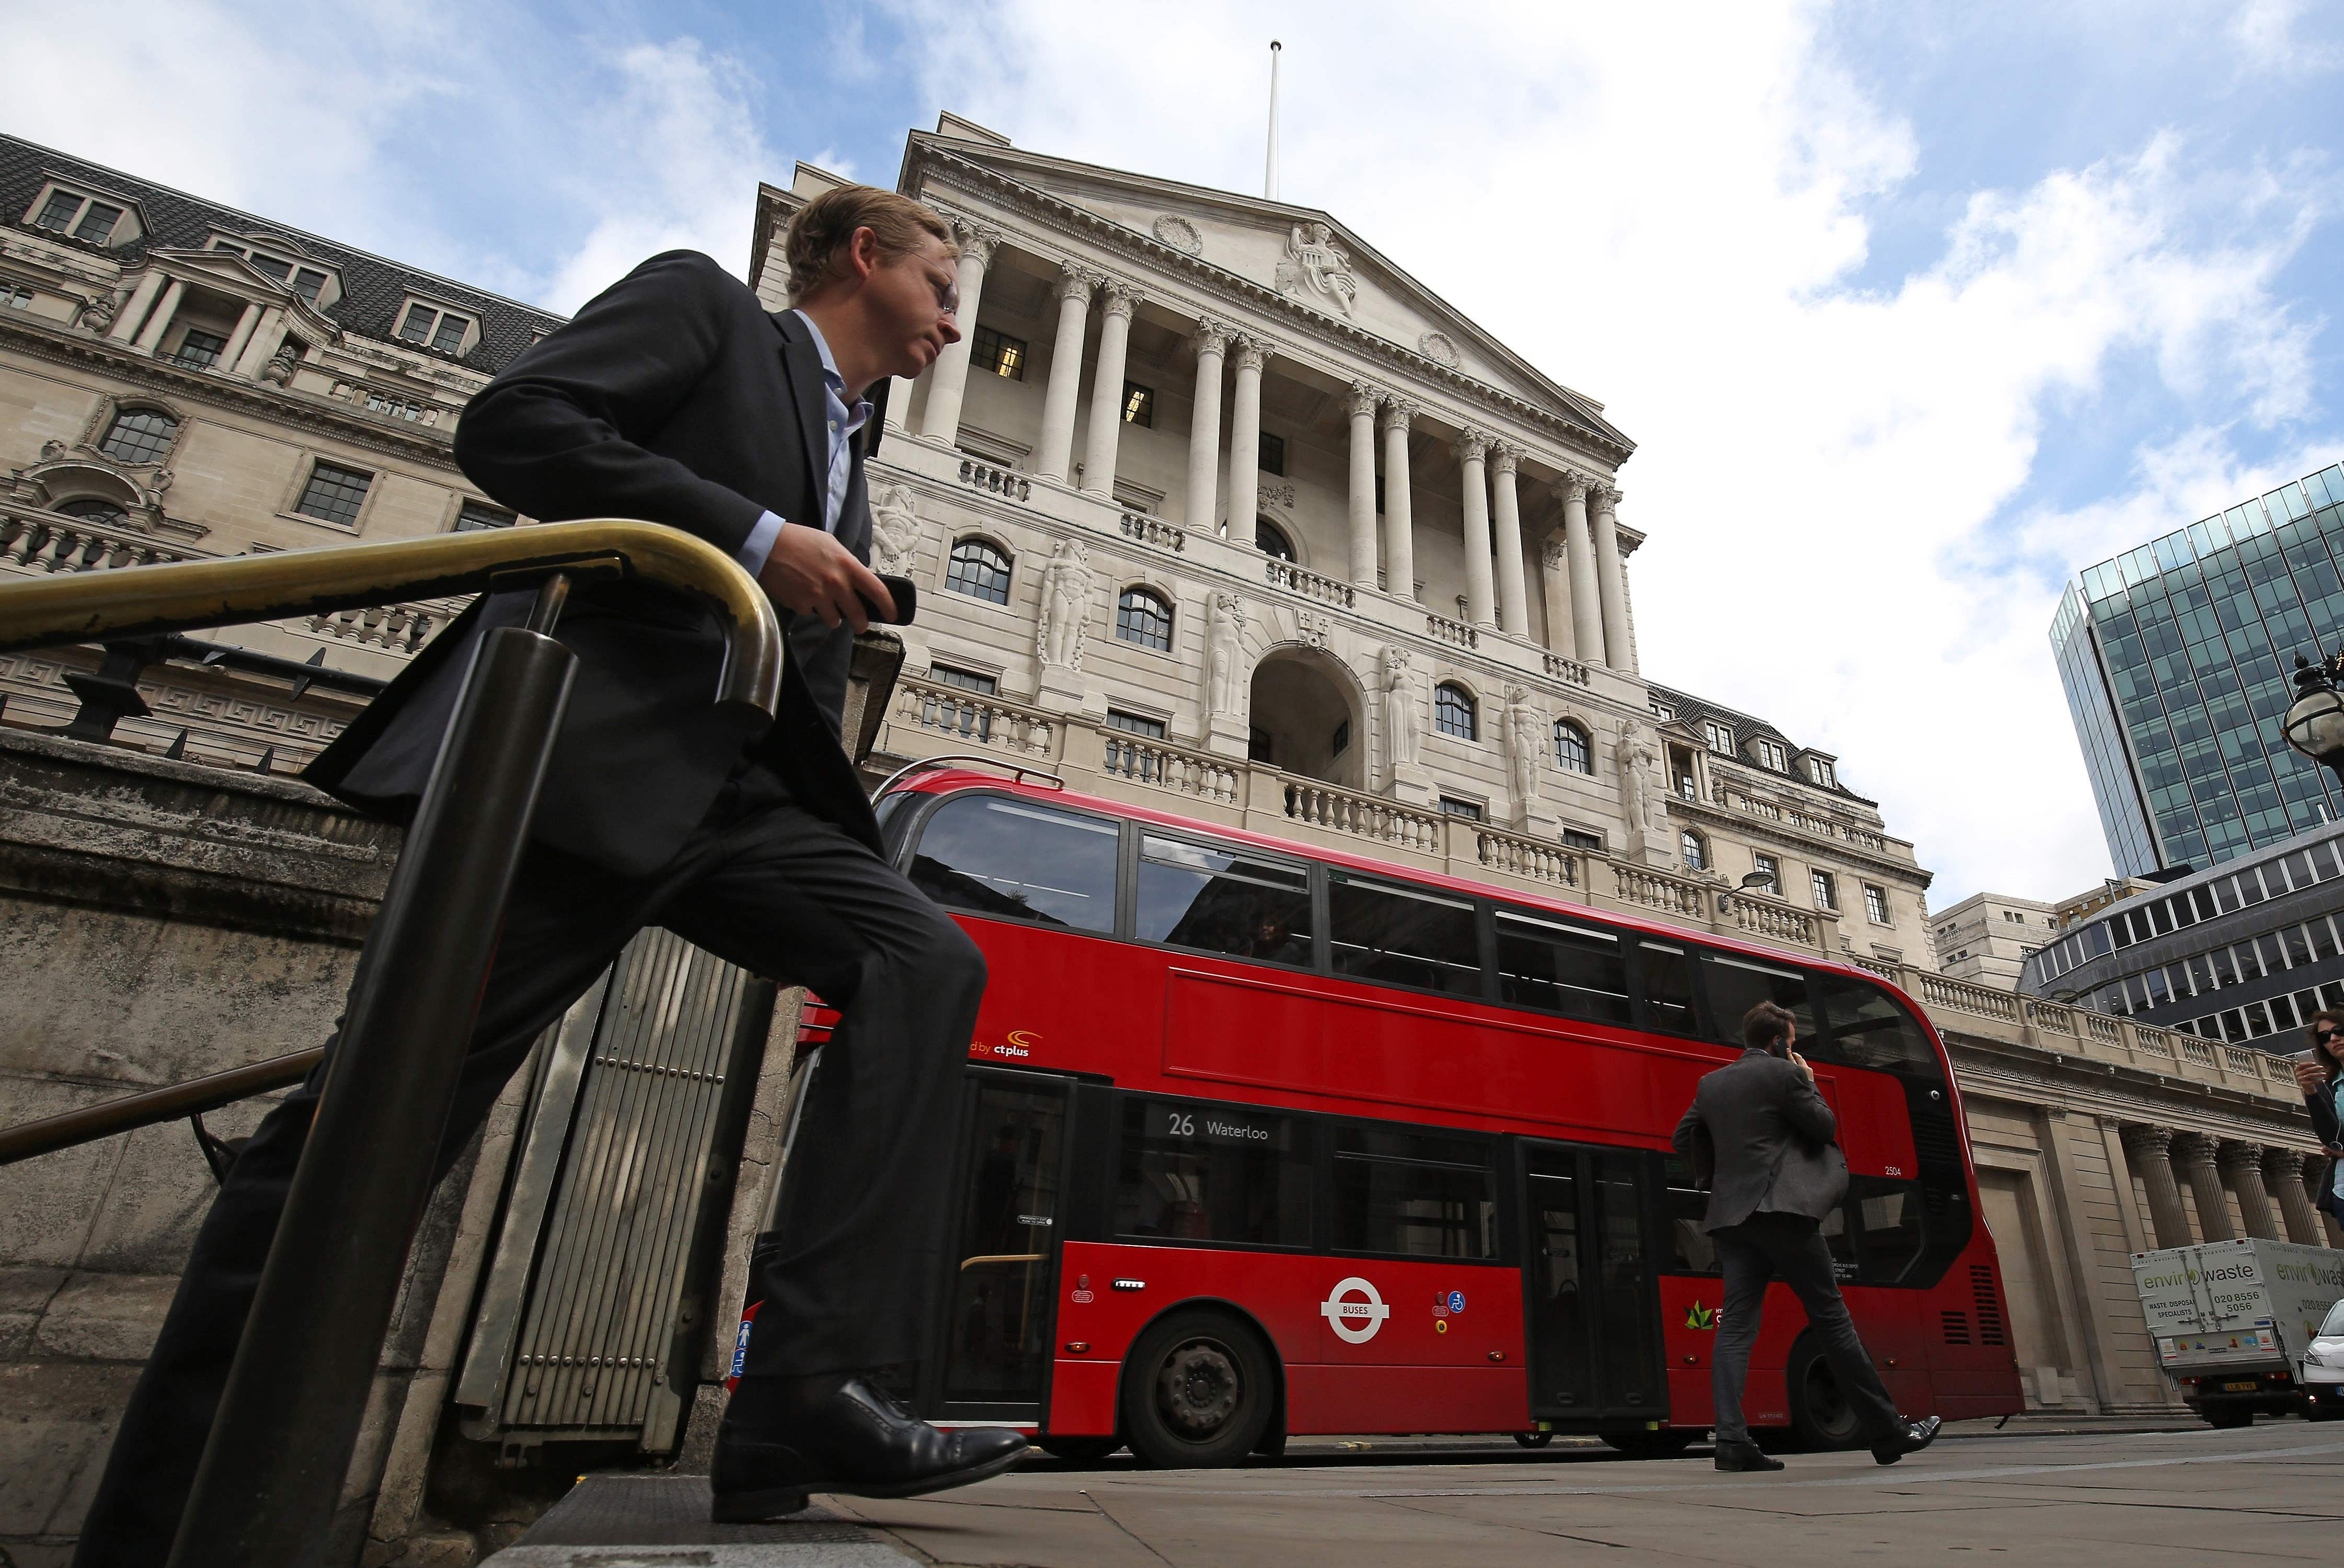 UK interest rates could rise faster than expected